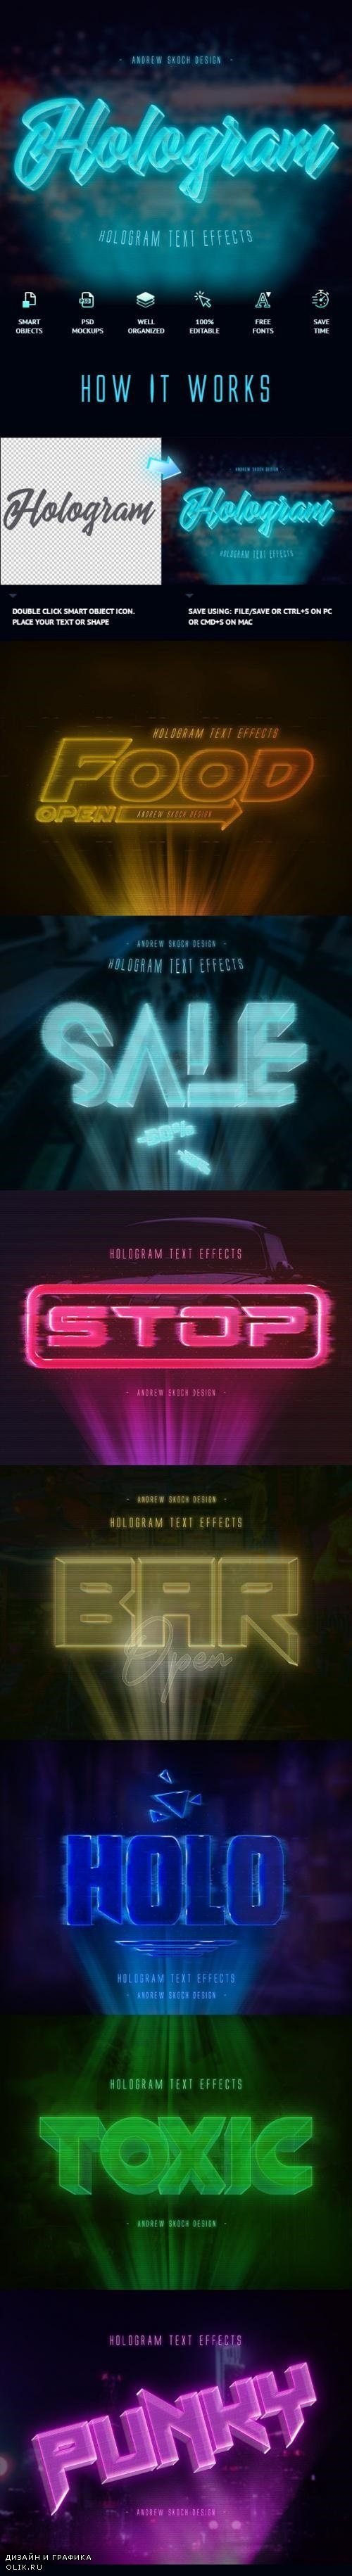 Hologram Text Effects - 23600572